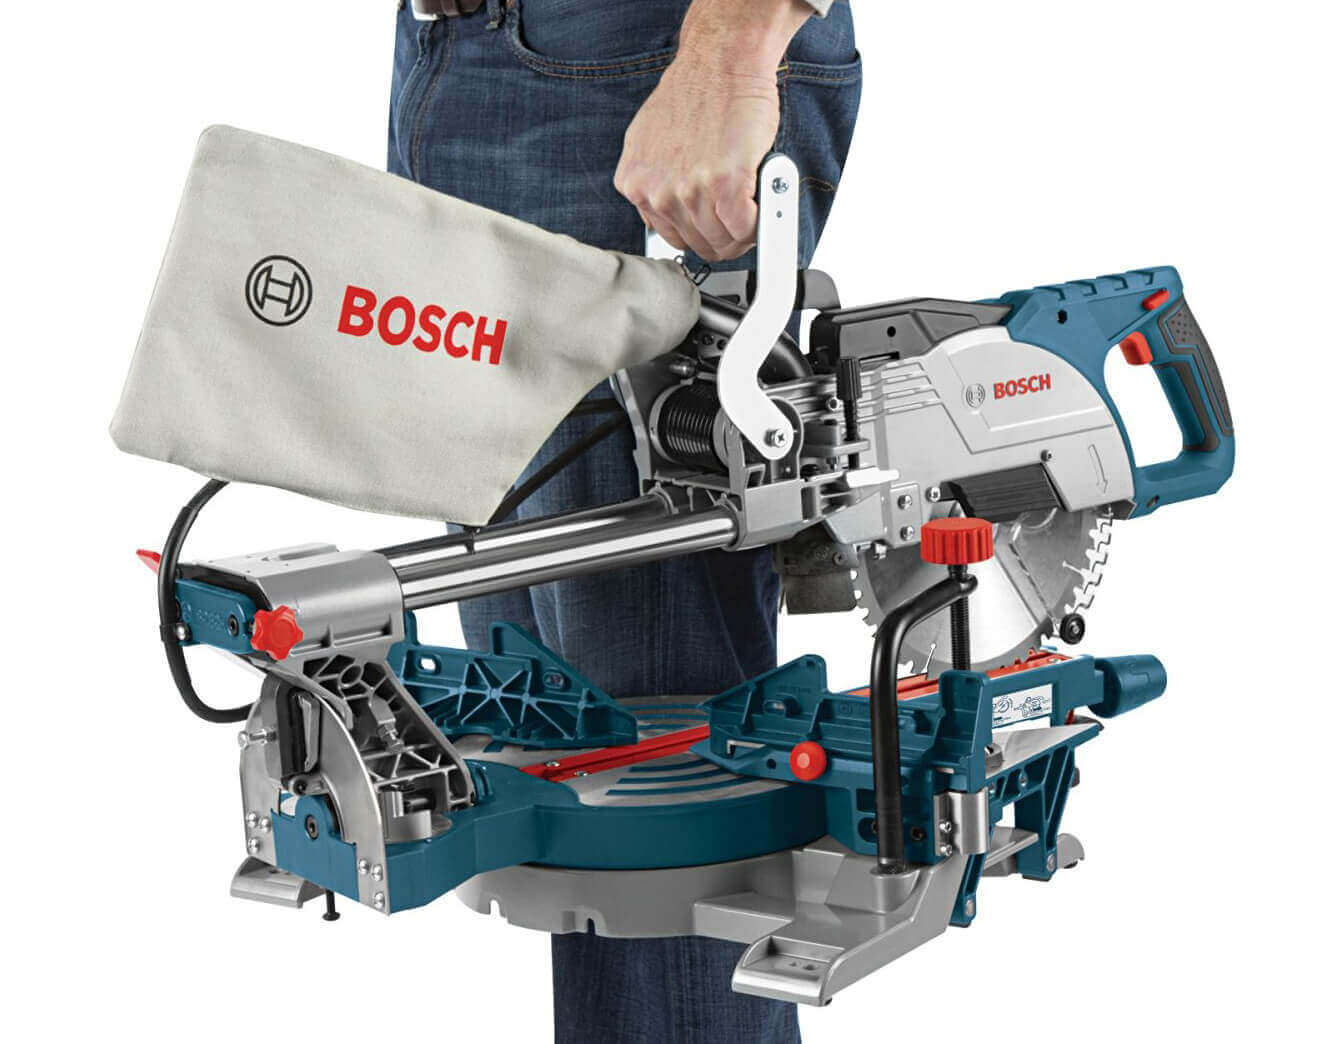 bosch-cm8s-compound-miter-saw-10